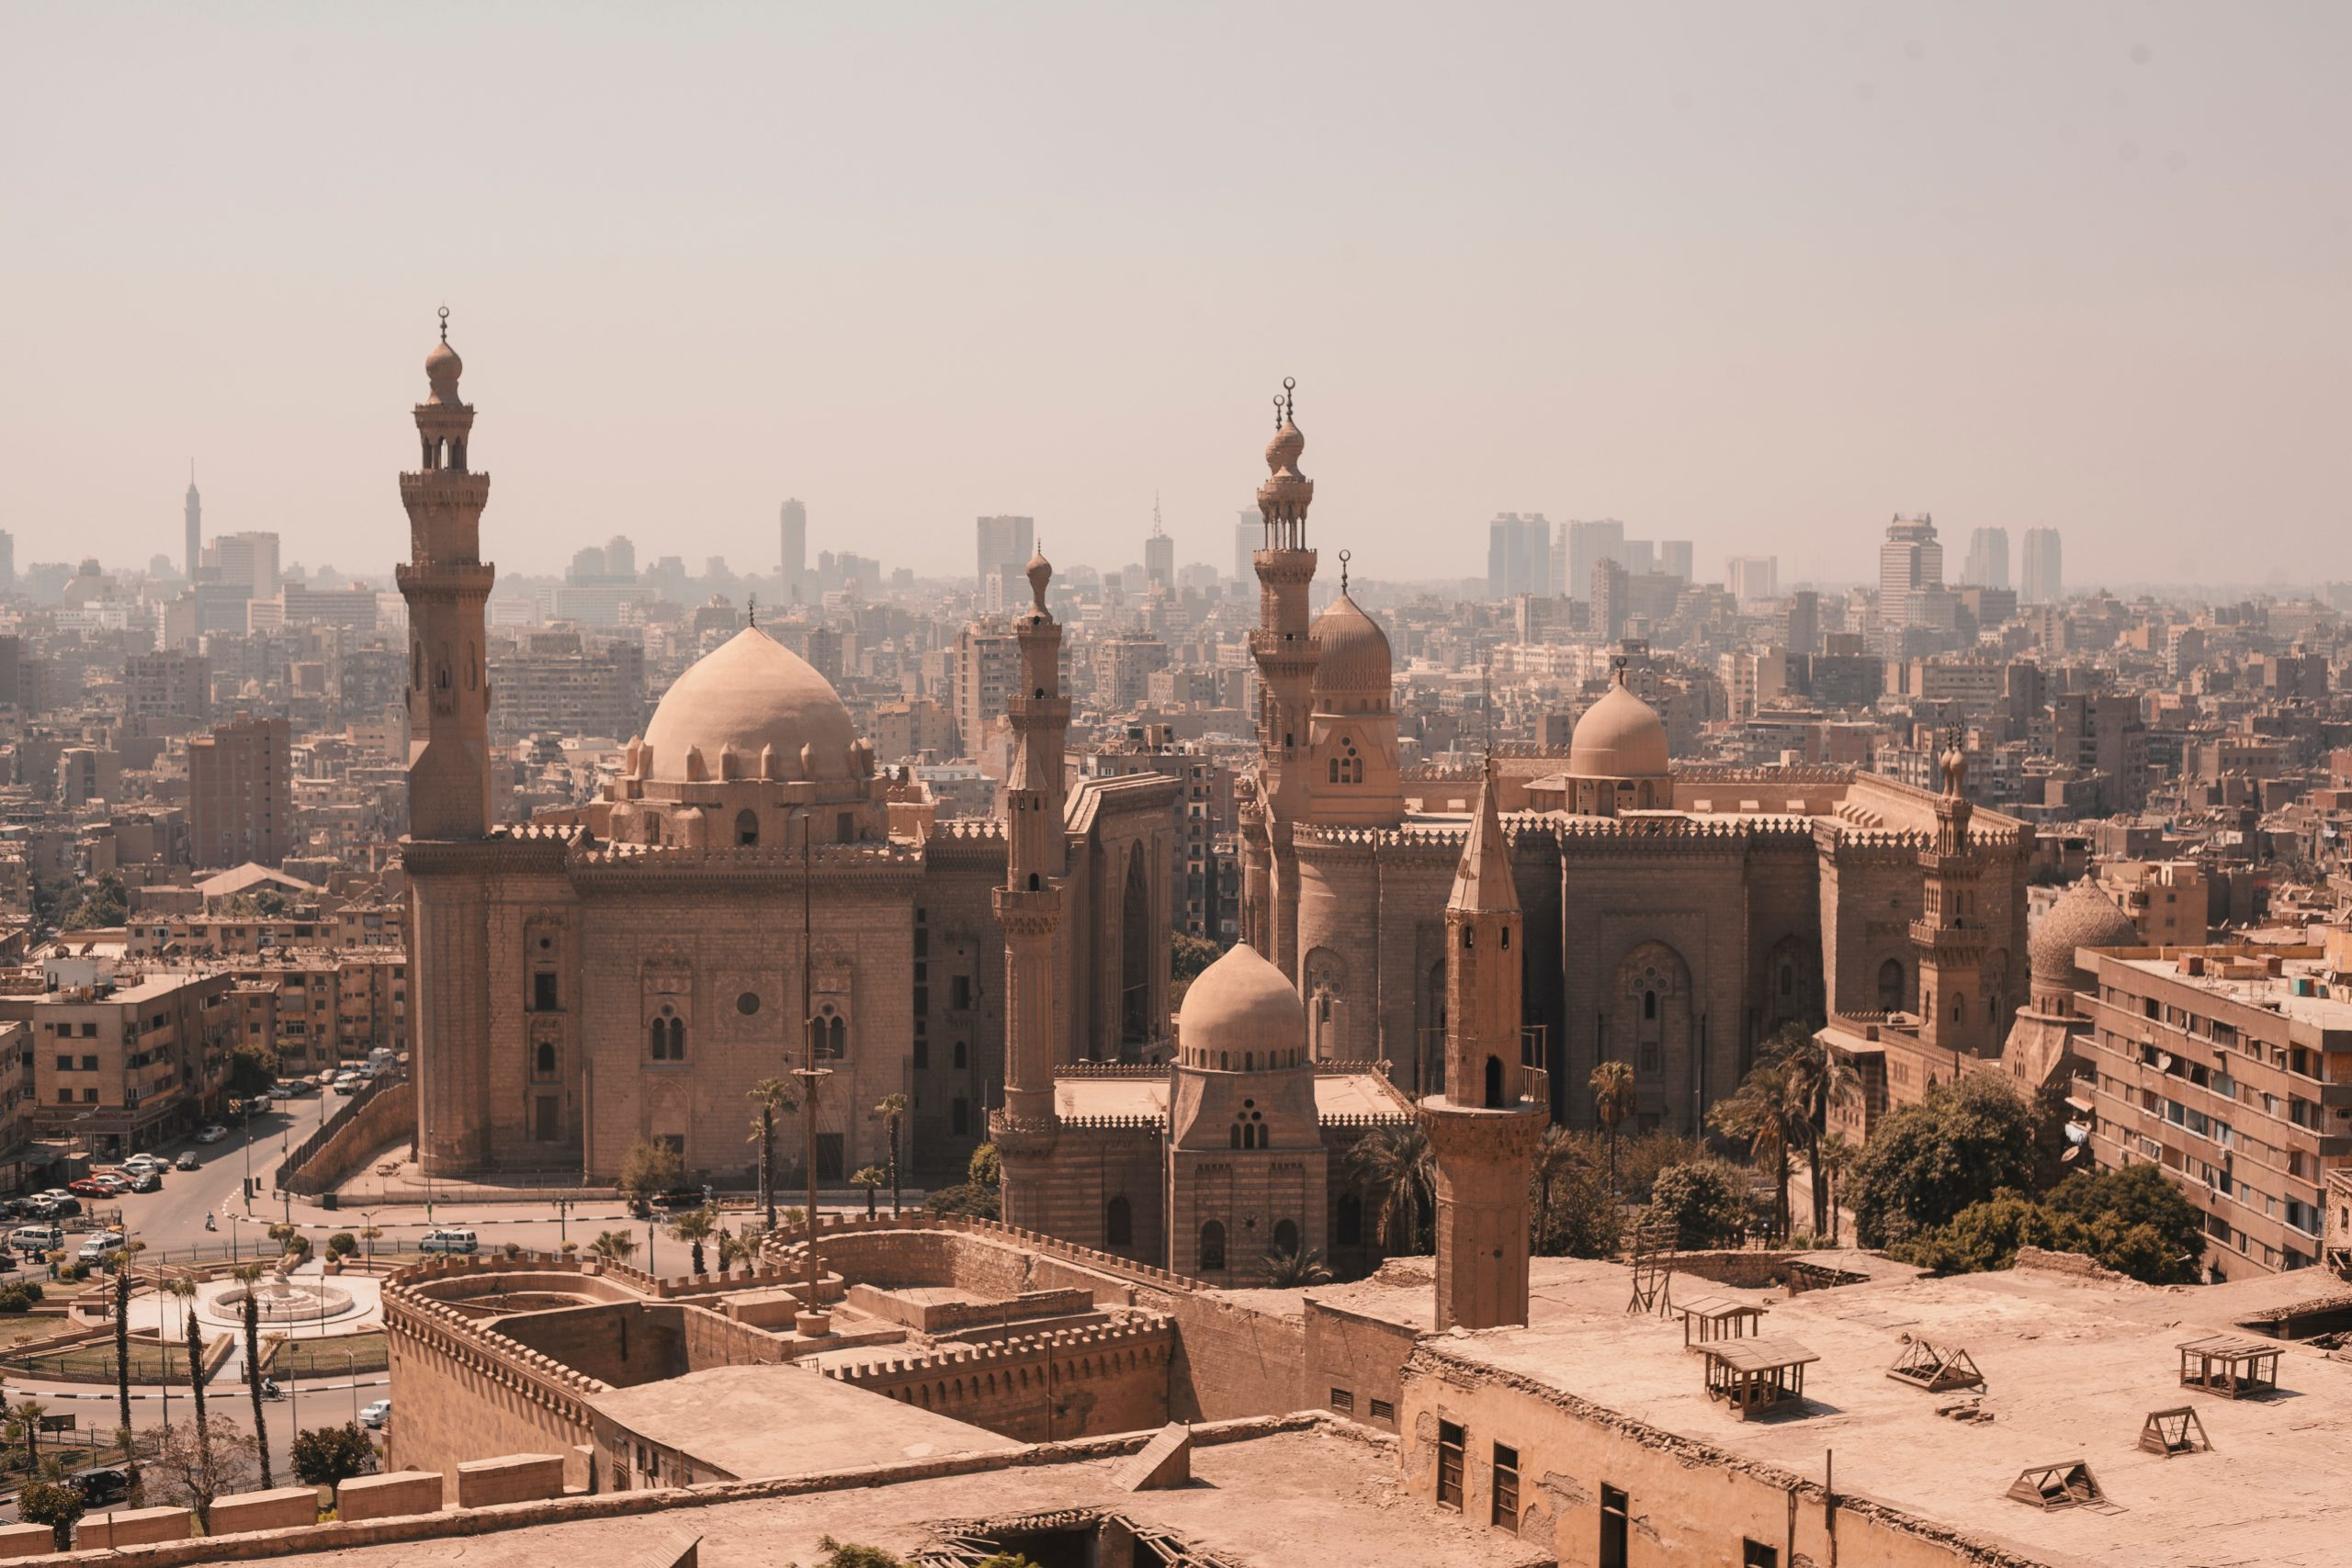 Aerial view of Cairo, Egypt